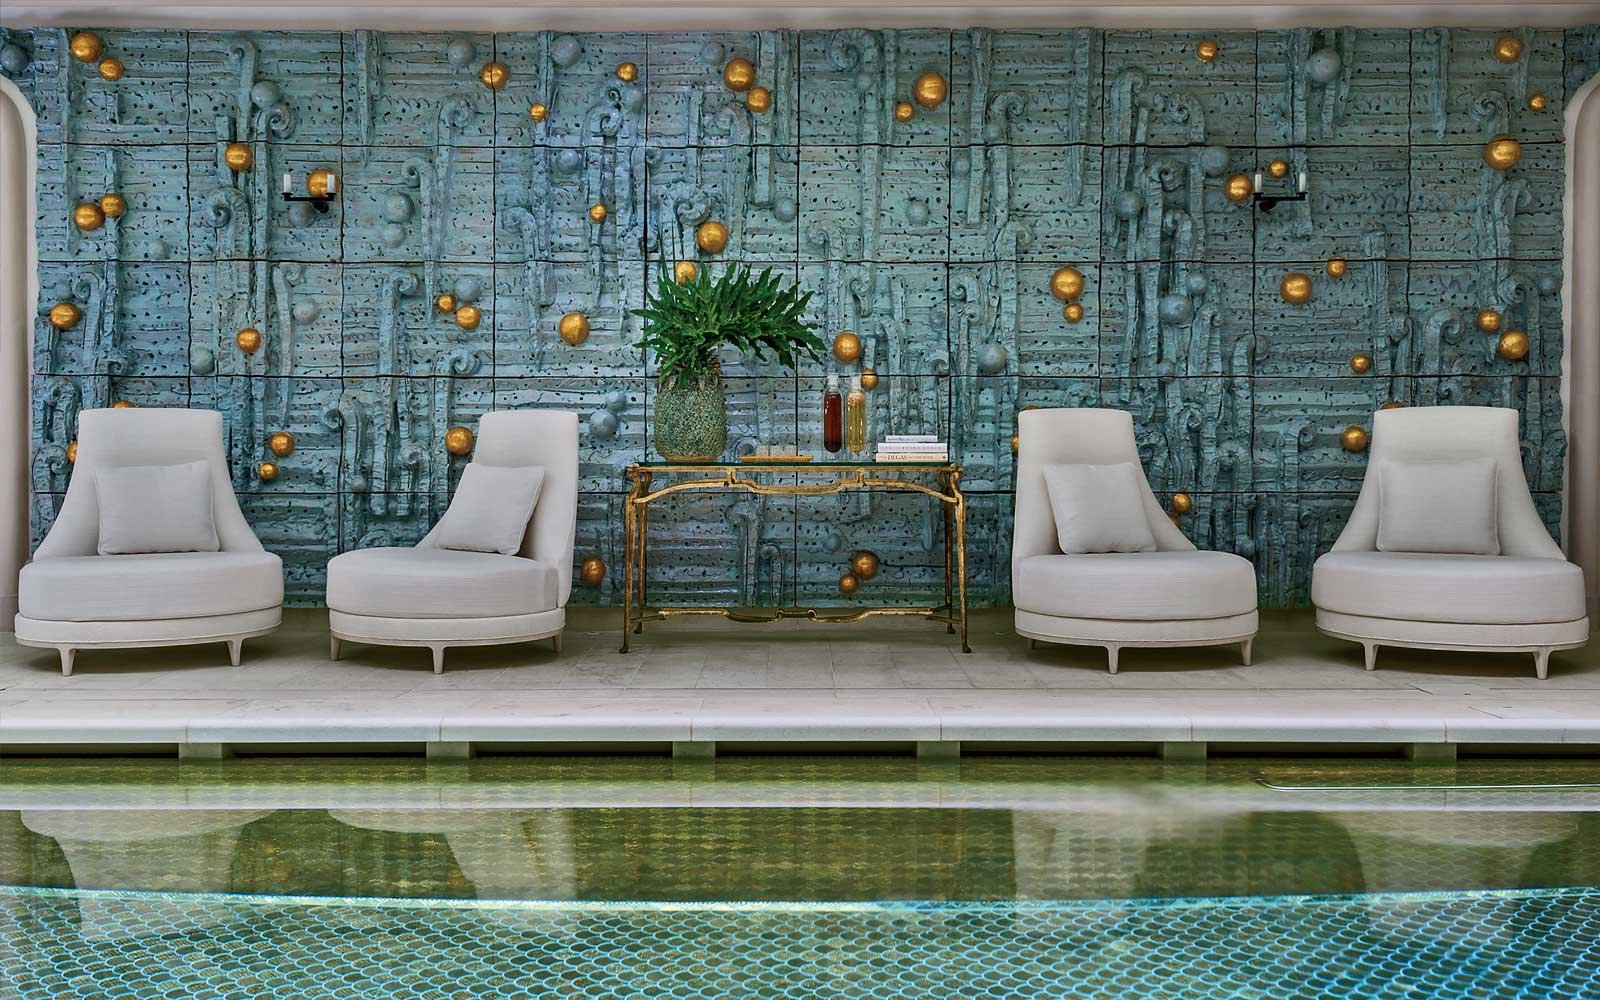 Pool at the Rosewood Hotel de Crillon in Paris, France